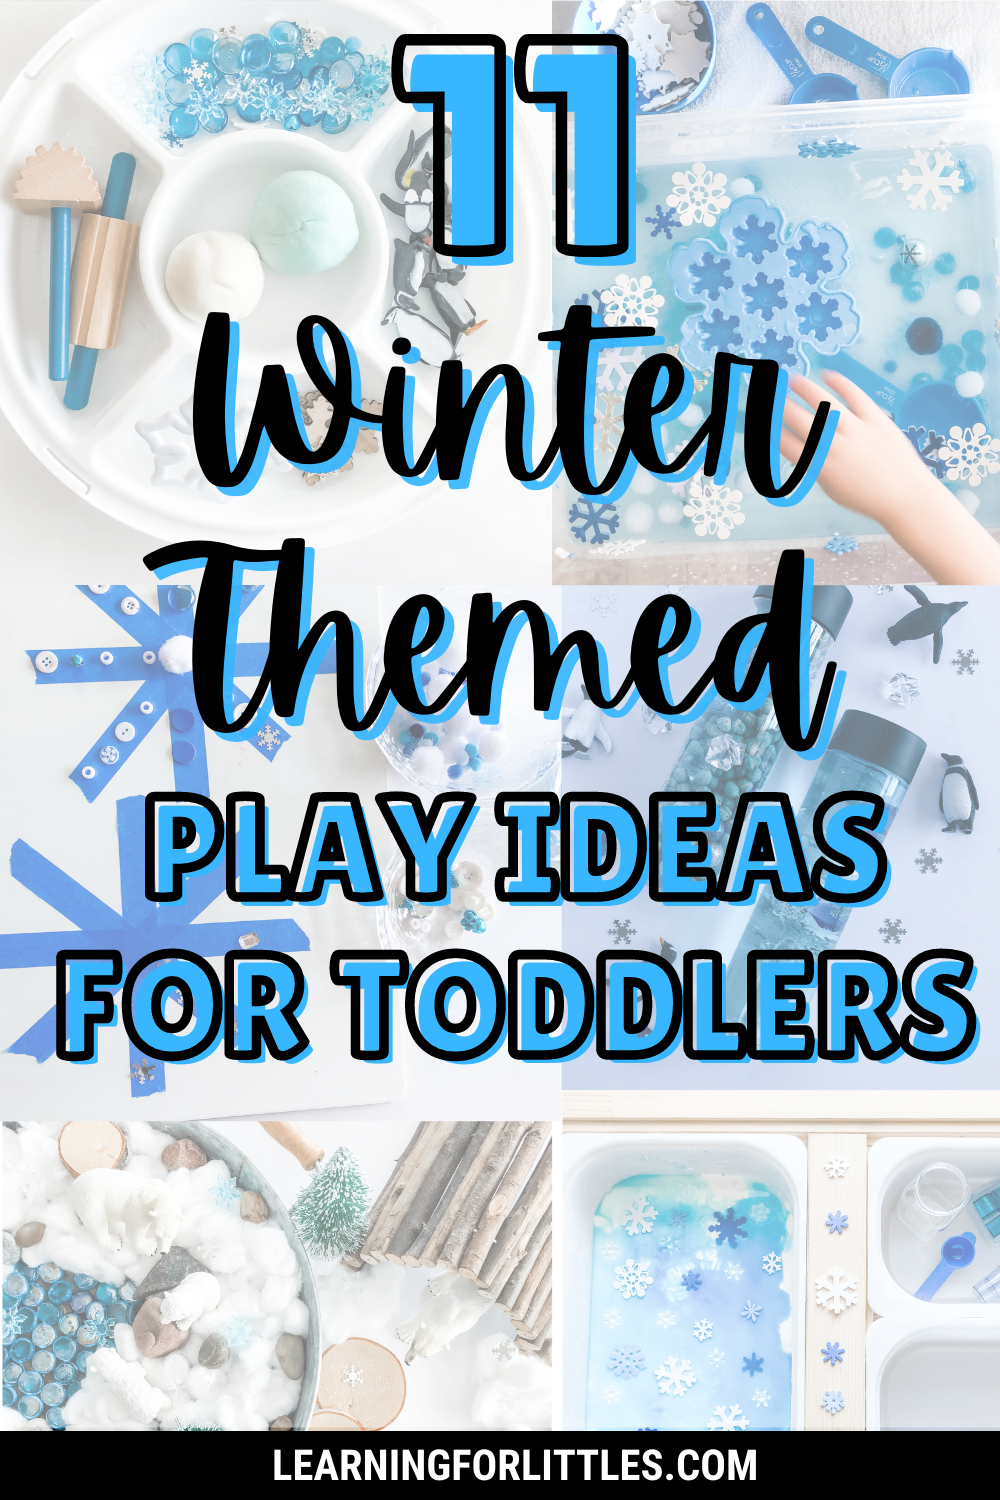 11 Winter Themed Play Ideas for Toddlers